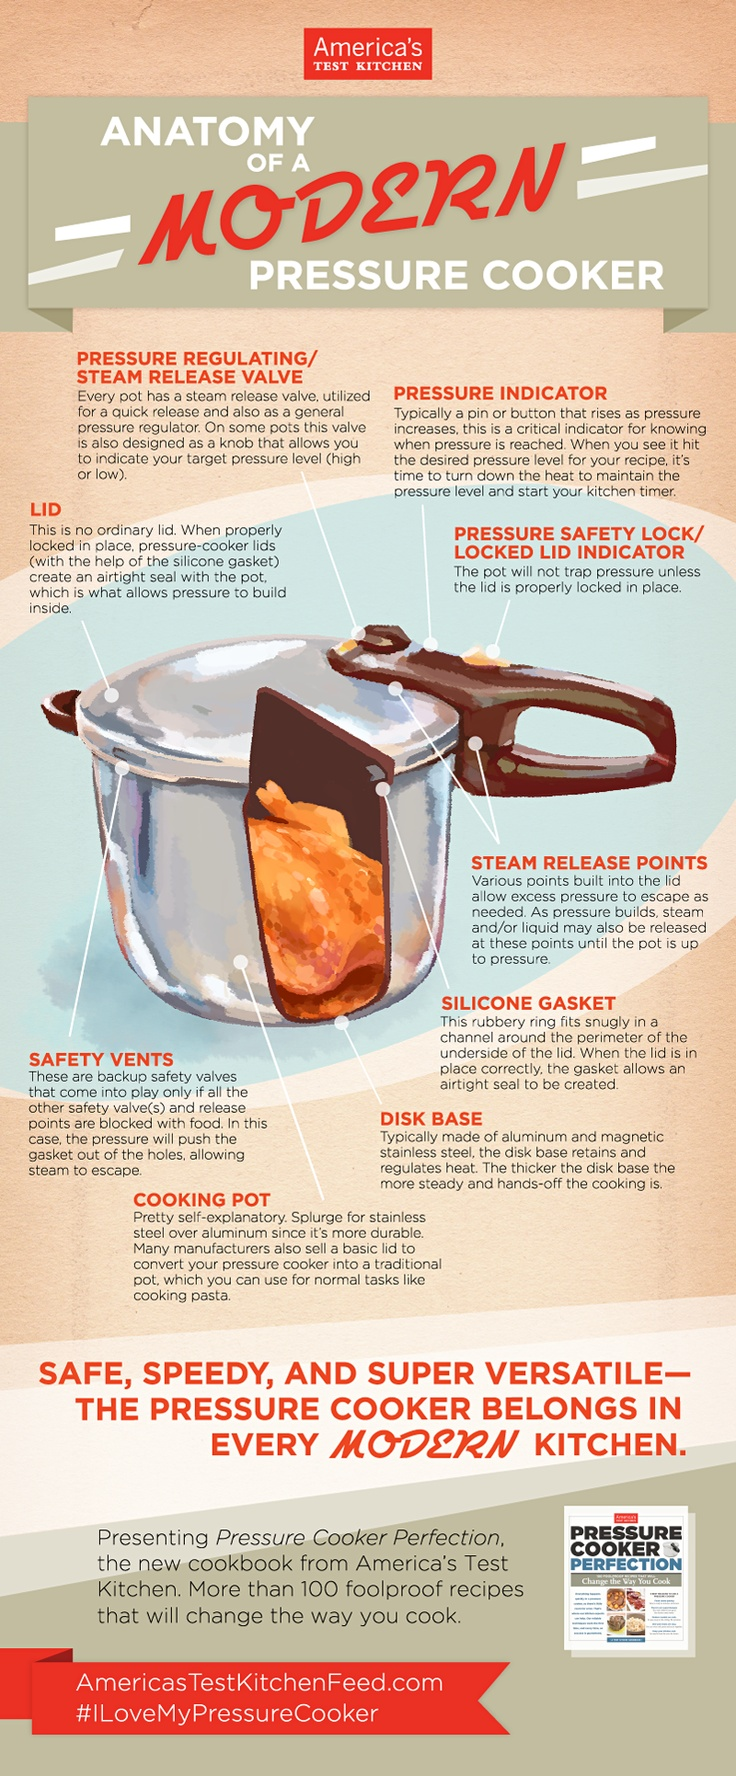 I Love My Pressure Cooker Because It's Designed for a Modern Kitchen [INFOGRAPHIC]